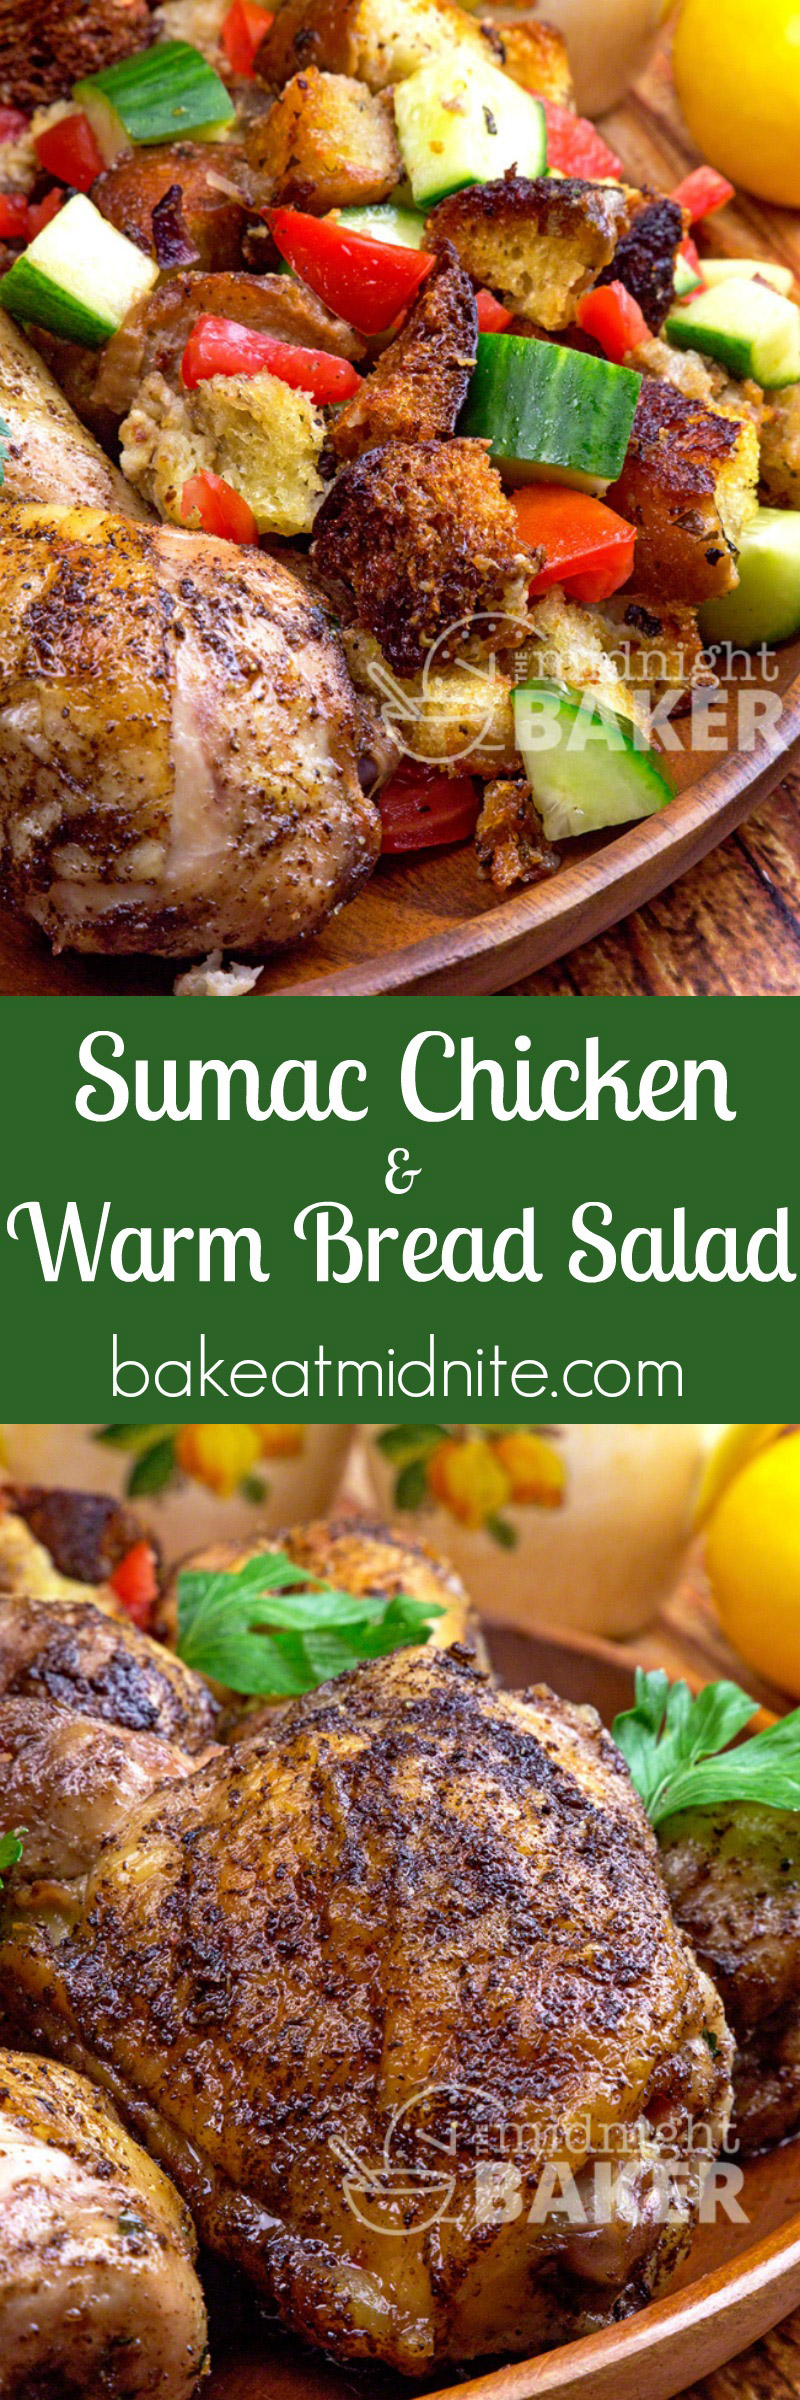 Chicken flavored with bright and citrusy sumac served with a warm artisan bread salad.